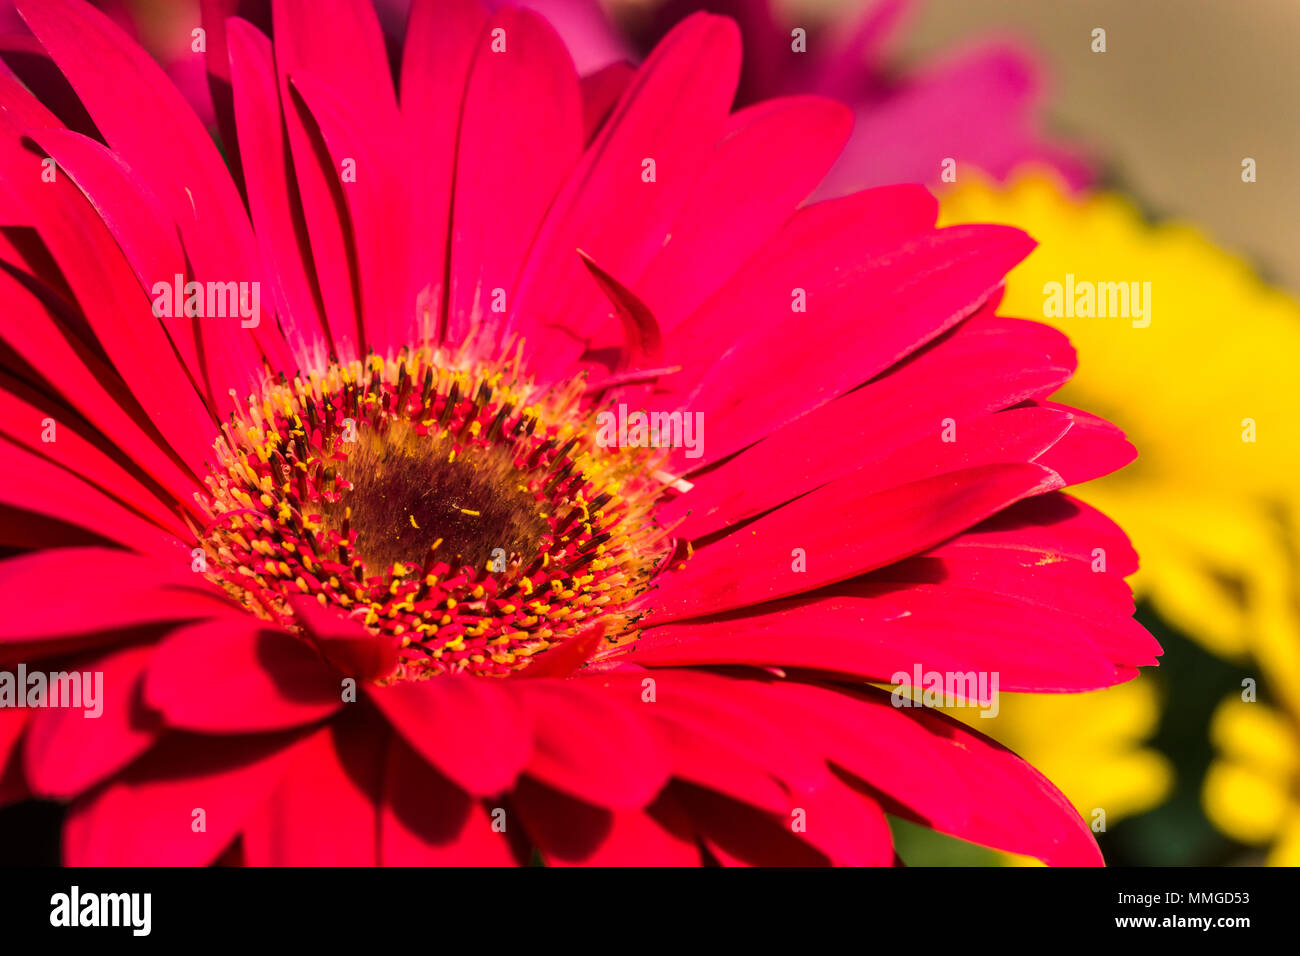 Close up view of common garden flower showing vivid and vibrant close up view of common garden flower showing vivid and vibrant color and flower parts izmirmasajfo